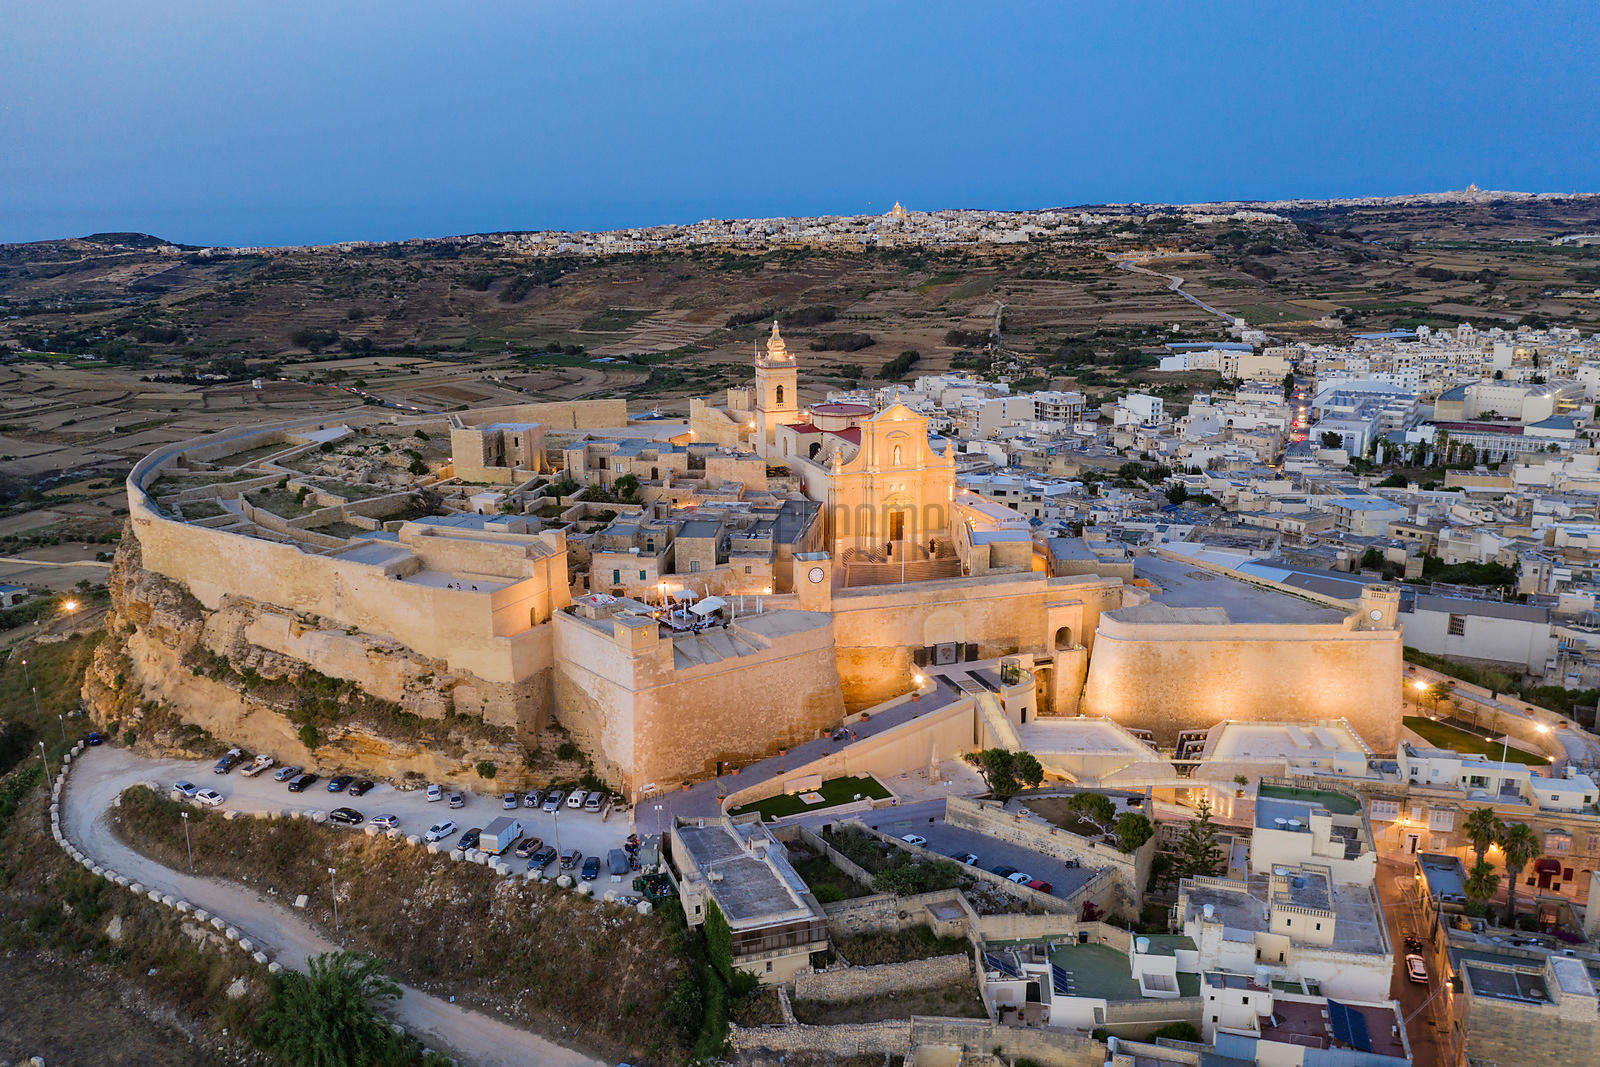 Elevated View of the Cittadella at Dusk with the Towns of Xaghra and Nadur in the Background